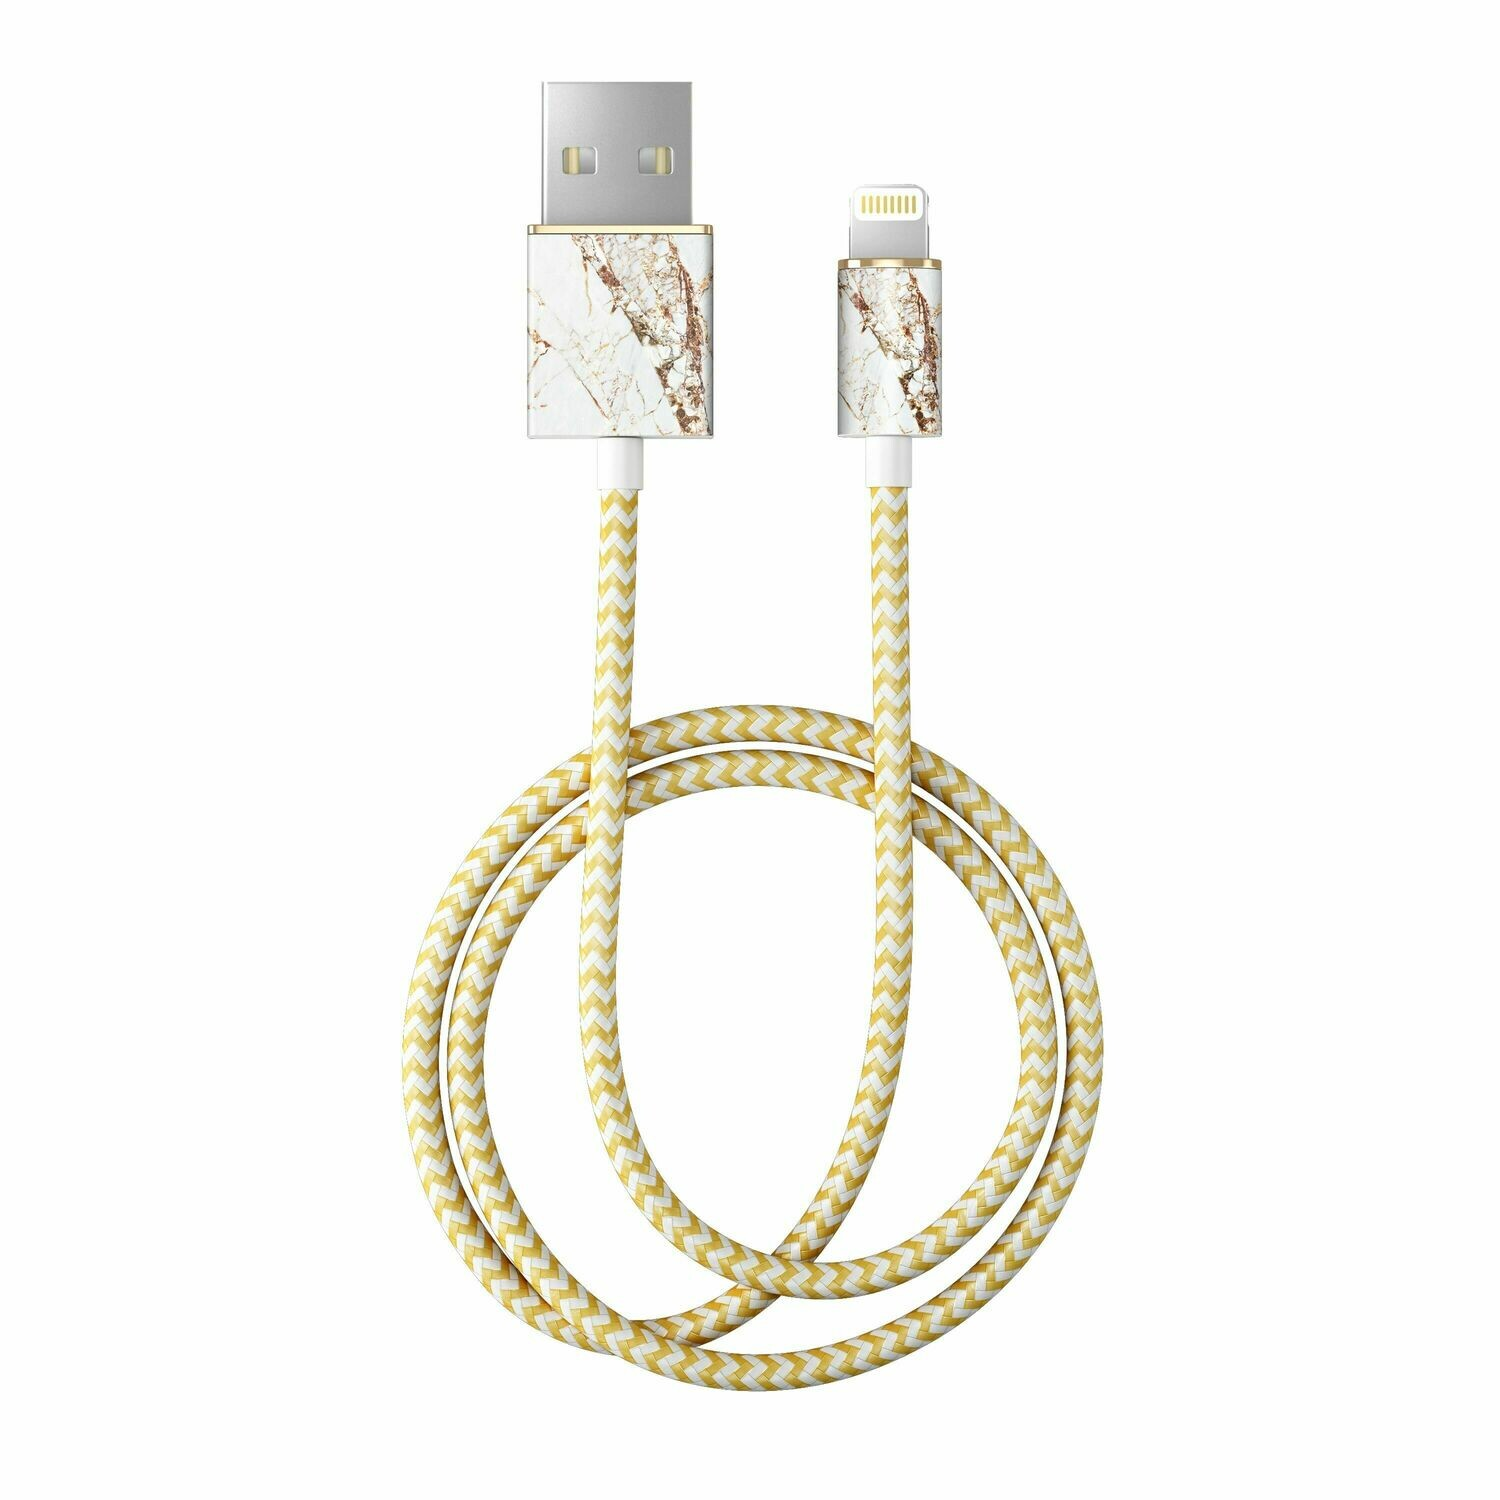 Carrara Gold Fashion Cable 1m Lightning